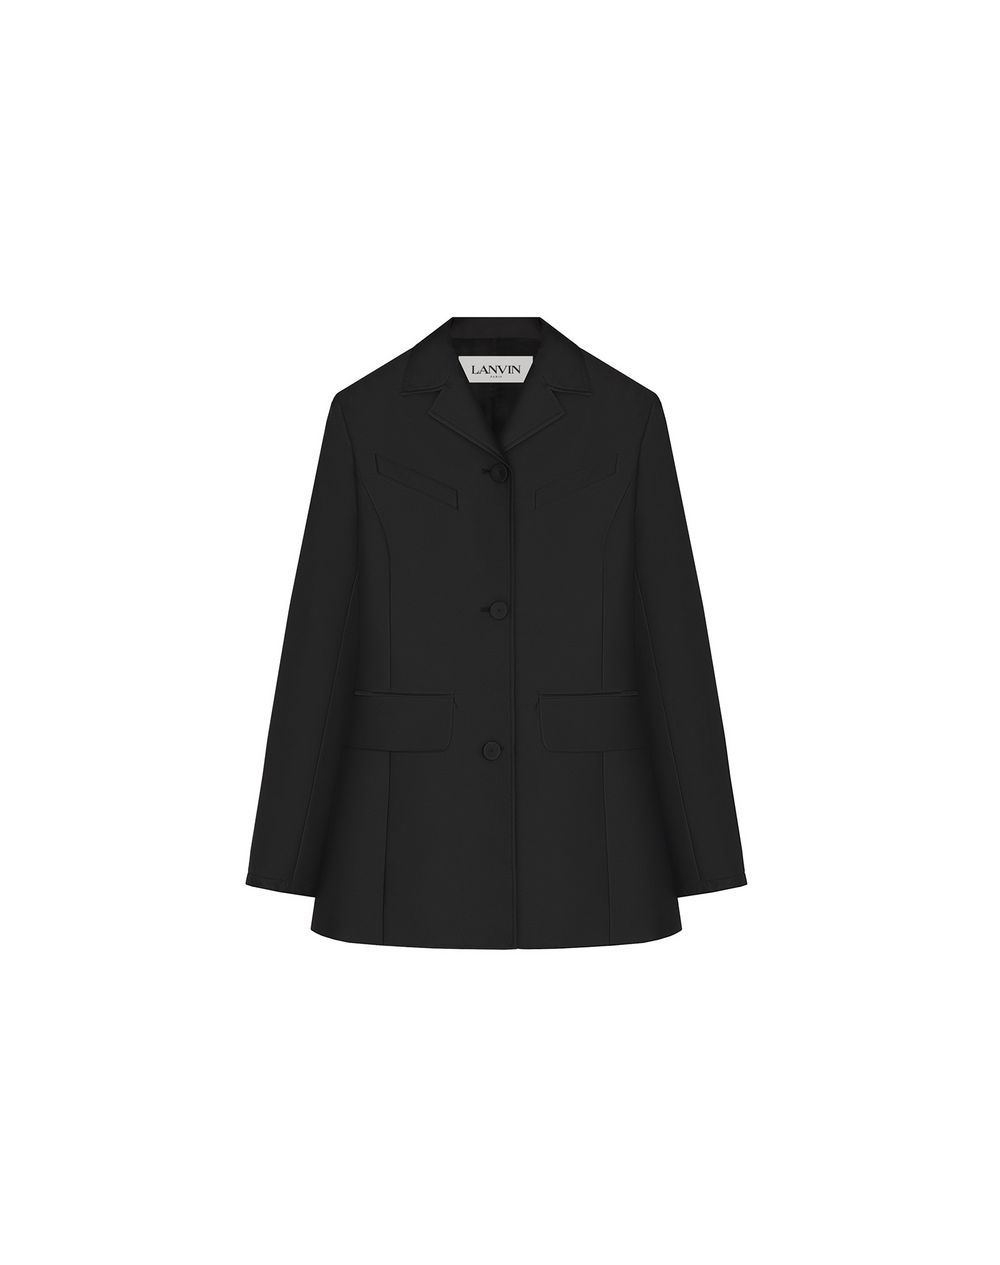 SATIN-EFFECT WAISTED TAILORED JACKET  - Lanvin